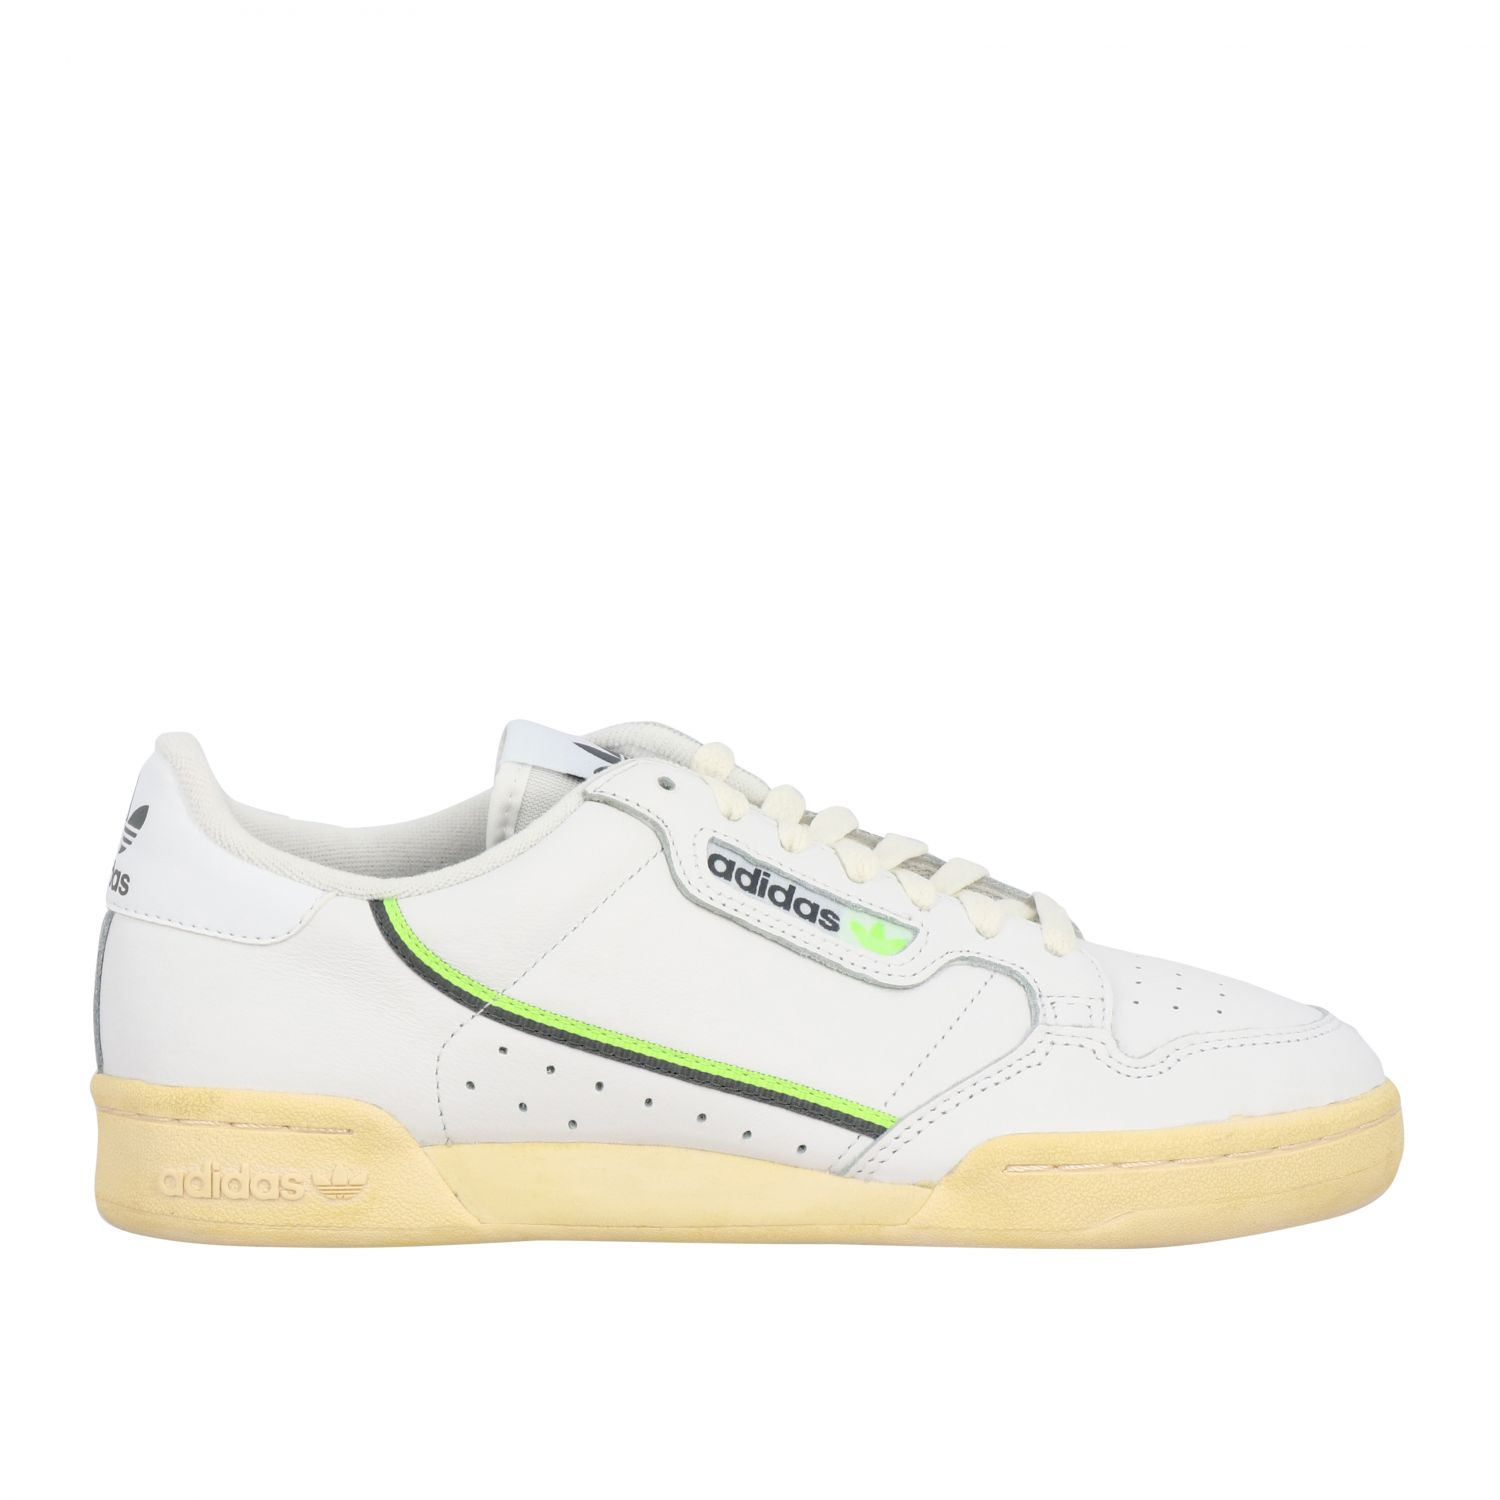 Sneakers Adidas Originals: Sneakers Continental 80 Adidas Originals in pelle bianco 1